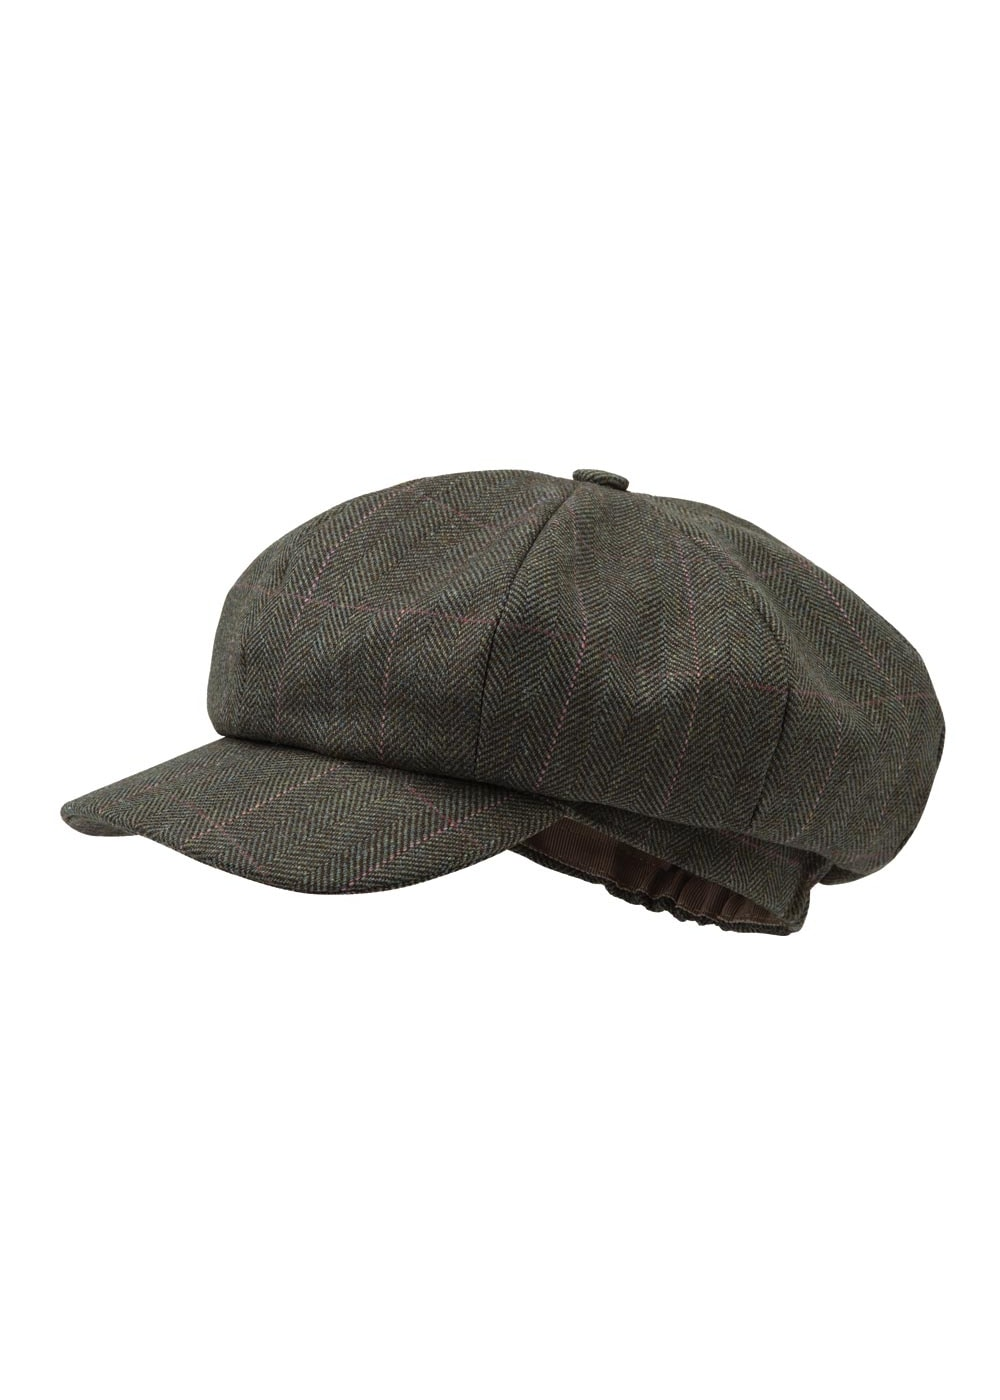 31d493f6 Schoffel Bakerboy Cap - Ladies from A Hume UK